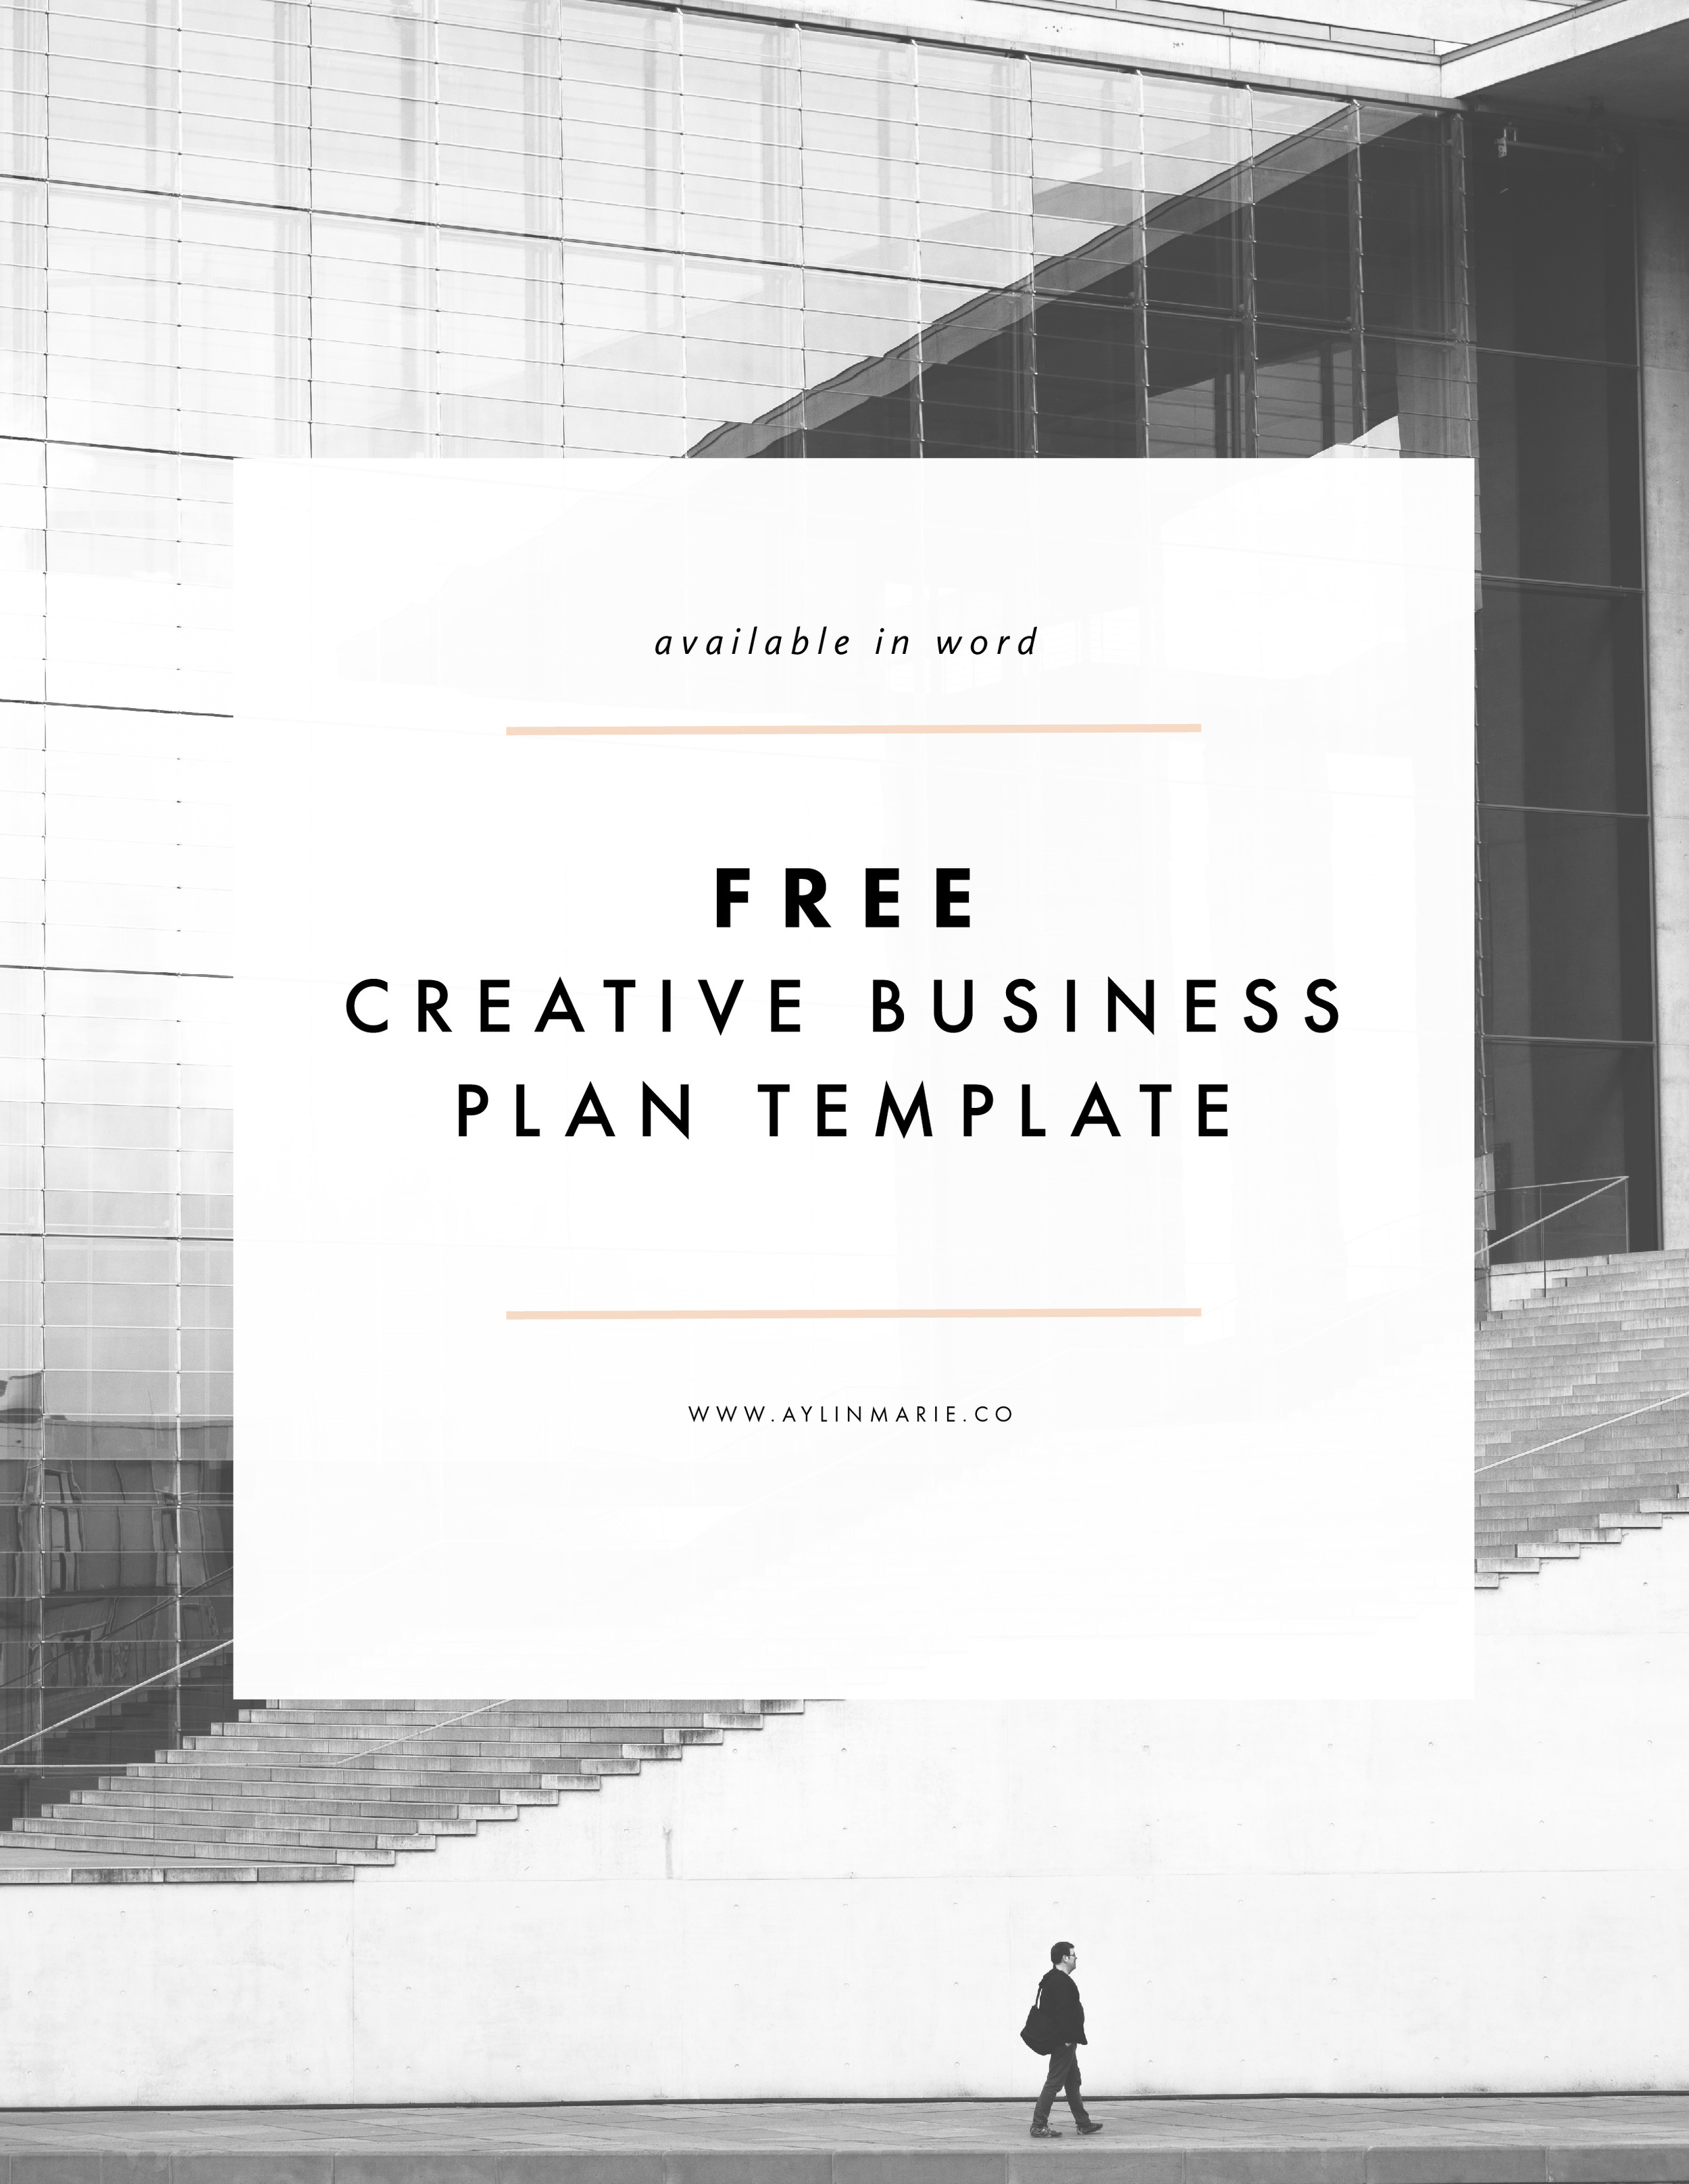 Freebie creative business plan template aylin marie freebie creative business plan template accmission Gallery